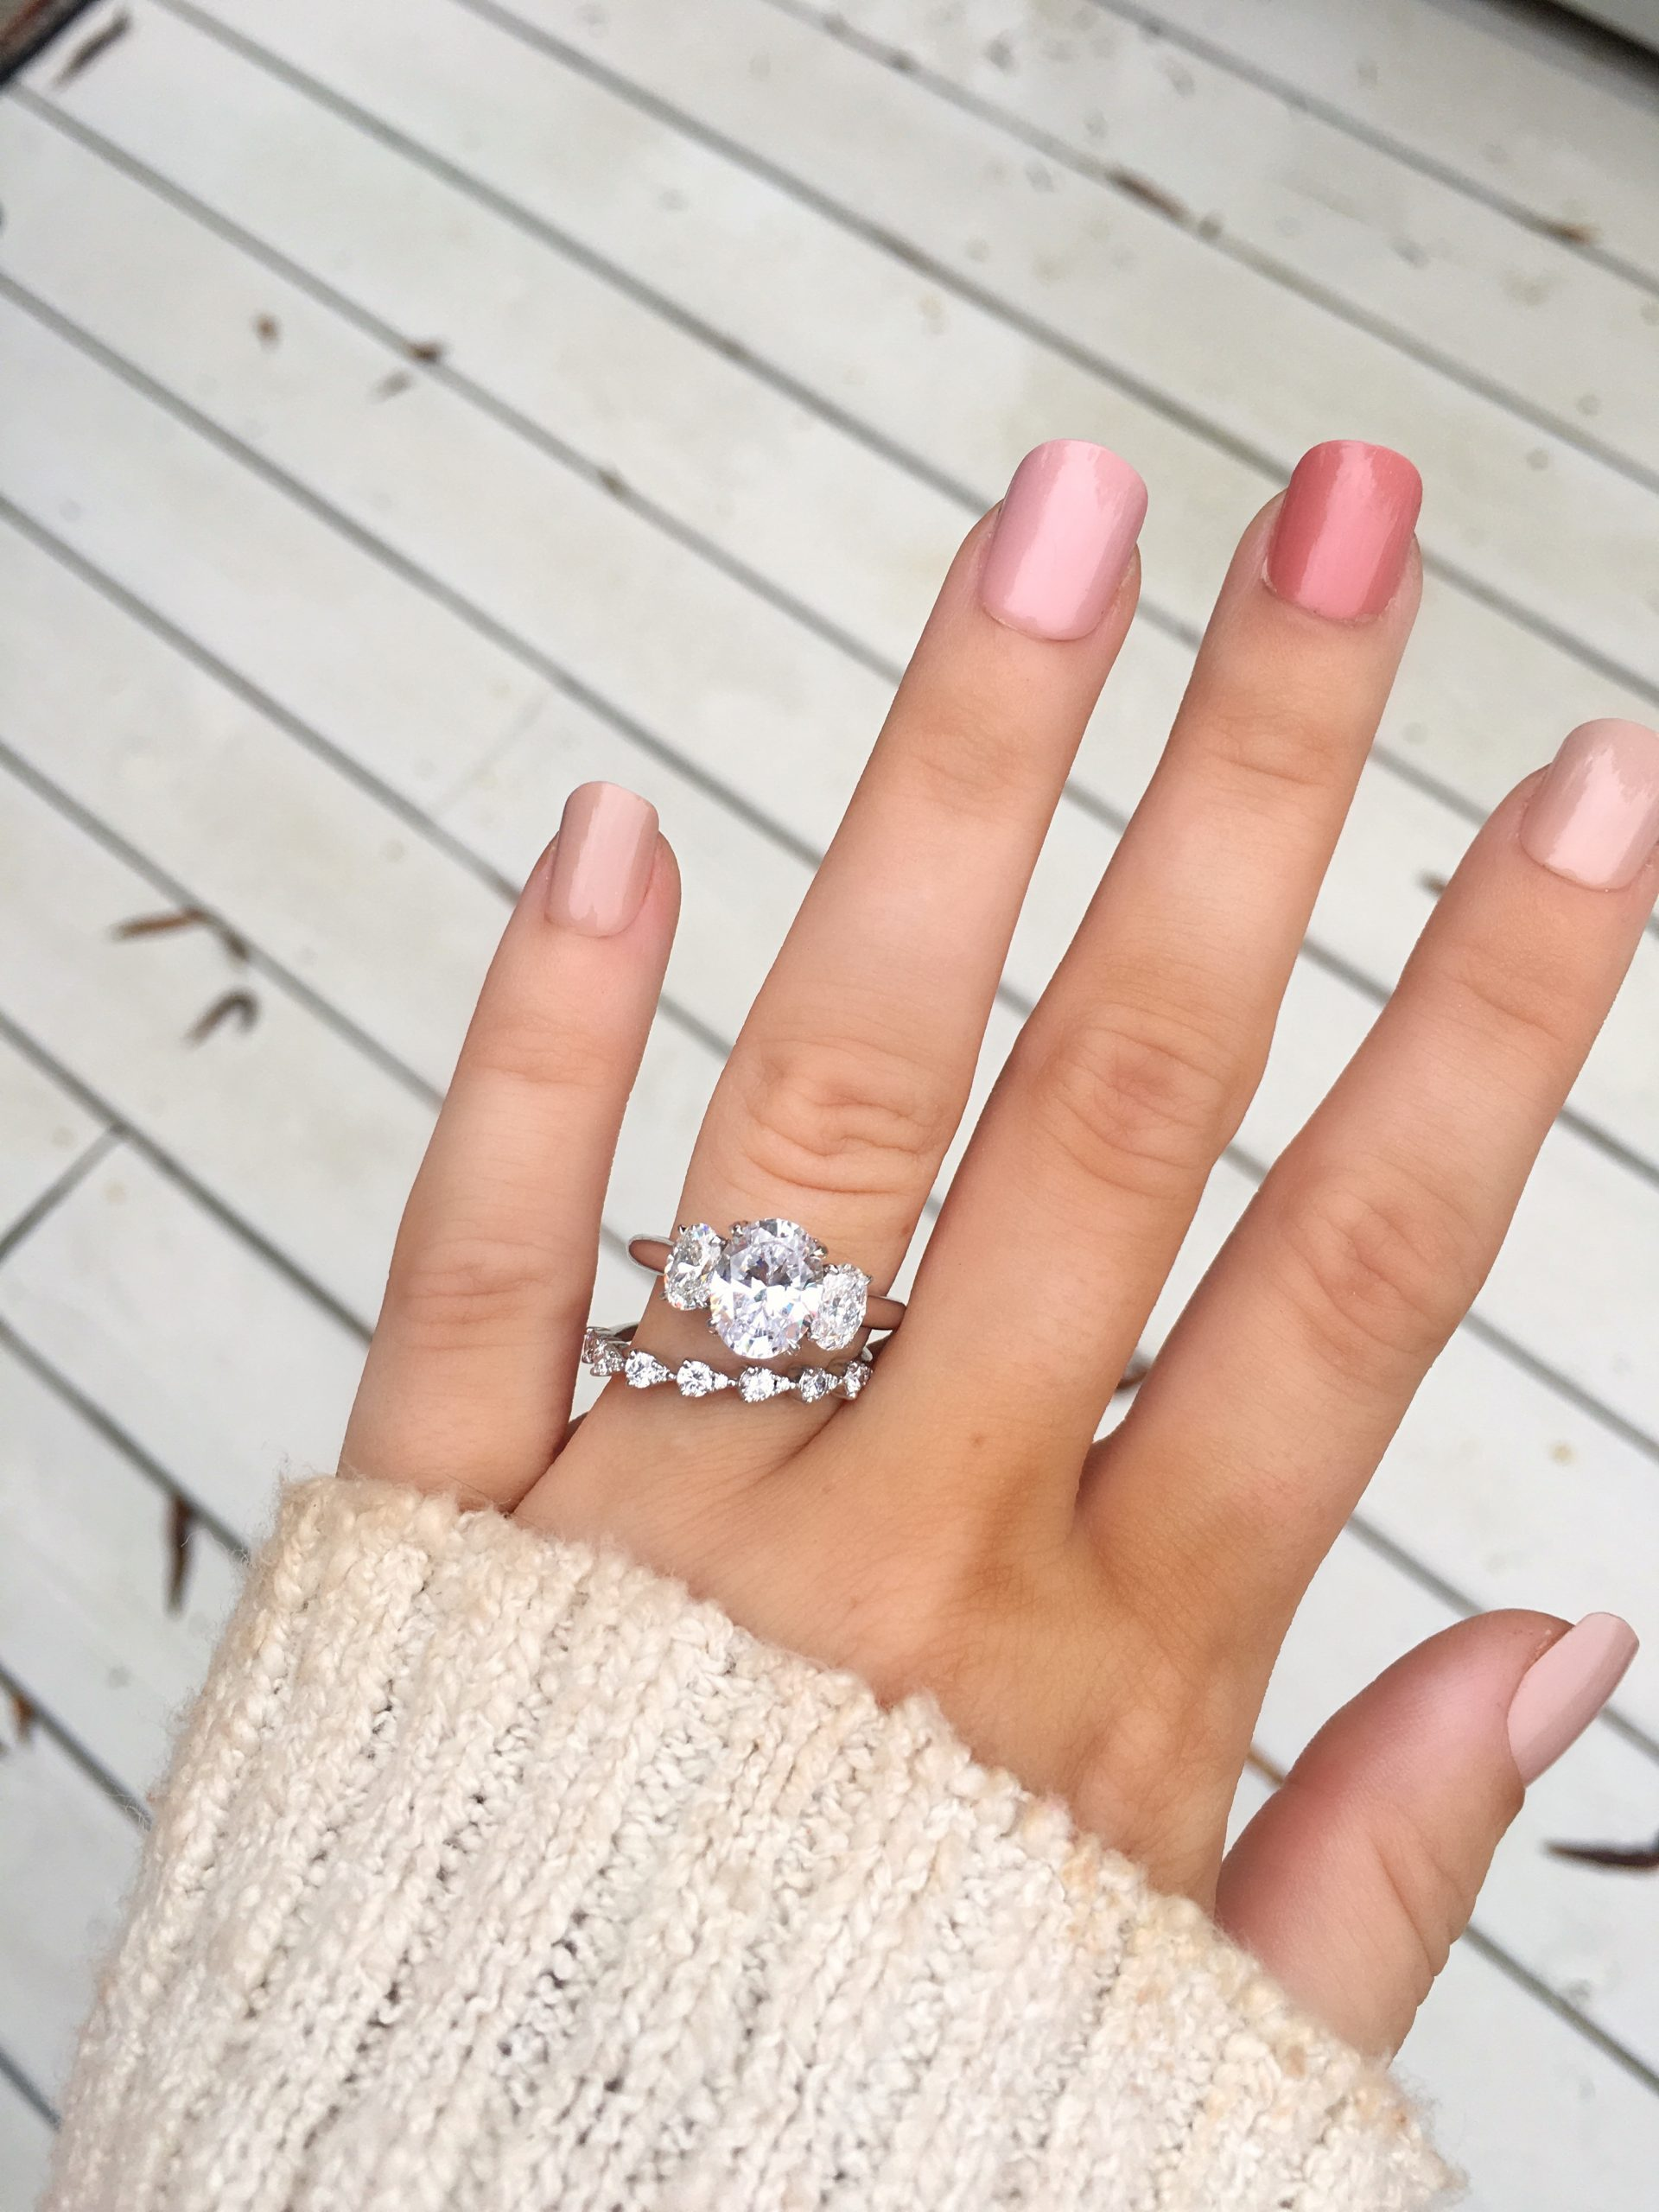 Diamonds Direct offers a truly unmatched selection of bridal and fashion jewelry in the New Orleans area, all within a fun atmosphere where you can feel comfortable playing with diamonds!